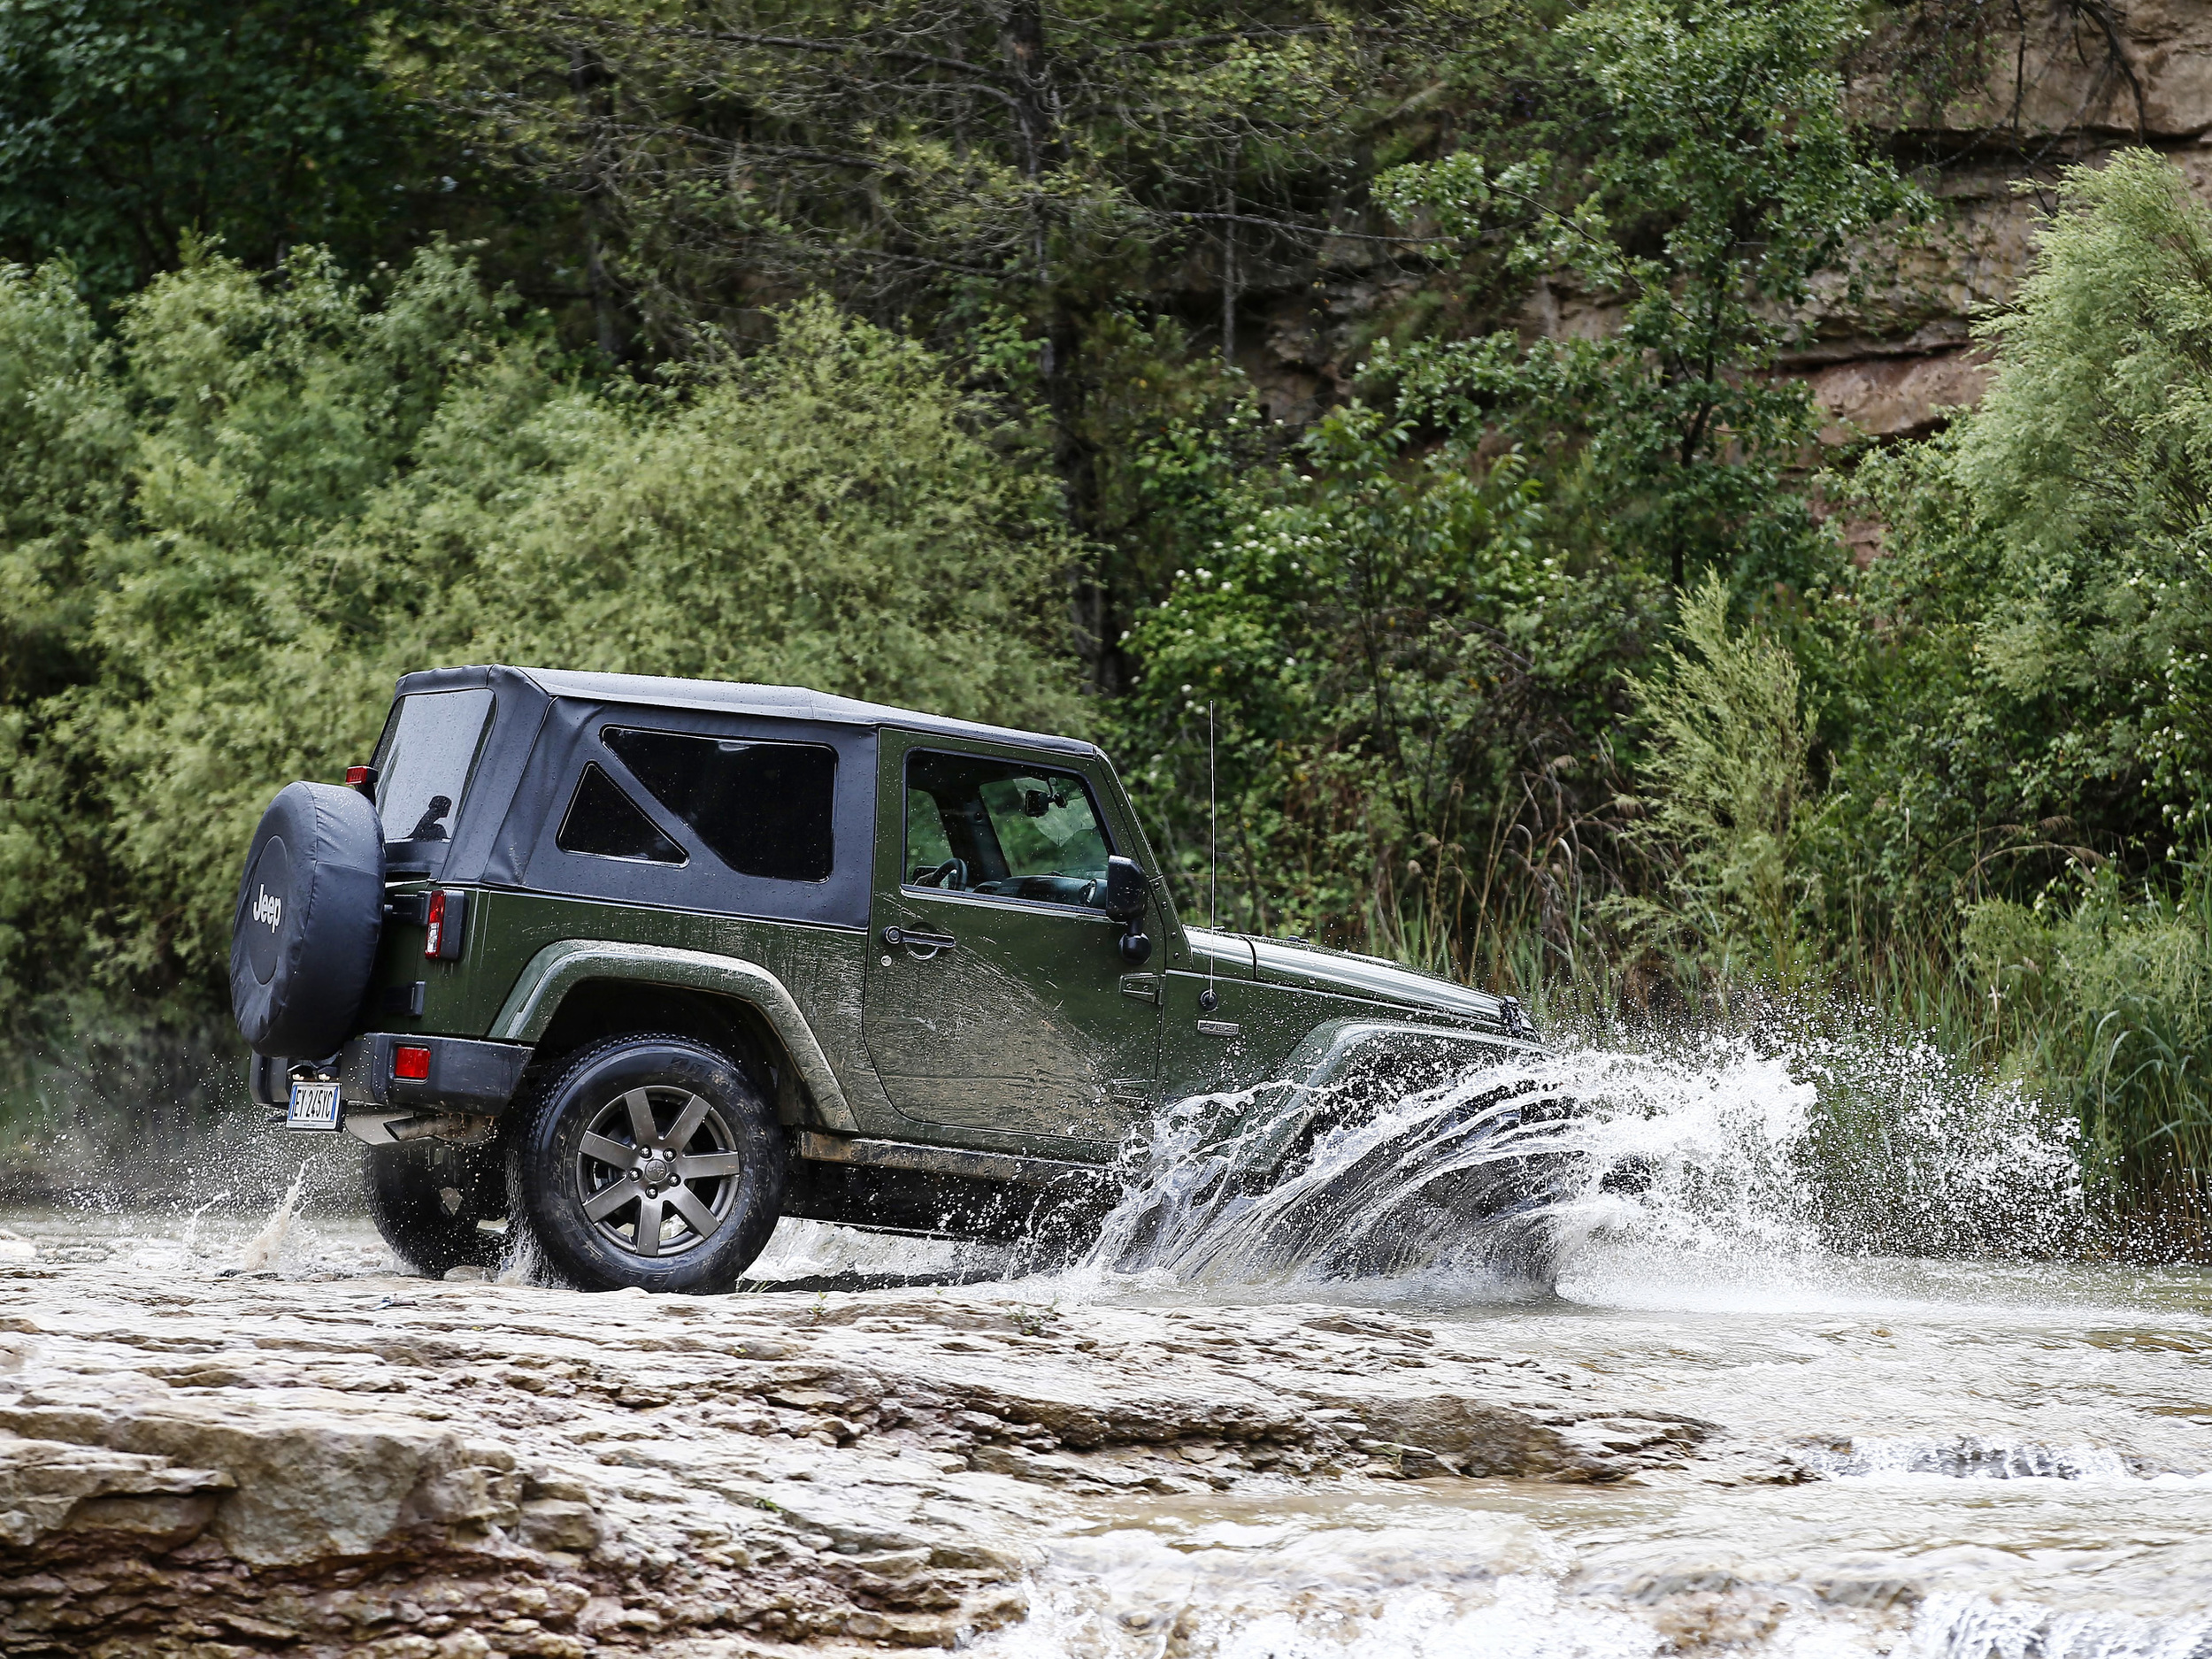 160621_Jeep_75th-Anniversary-series_09.jpg